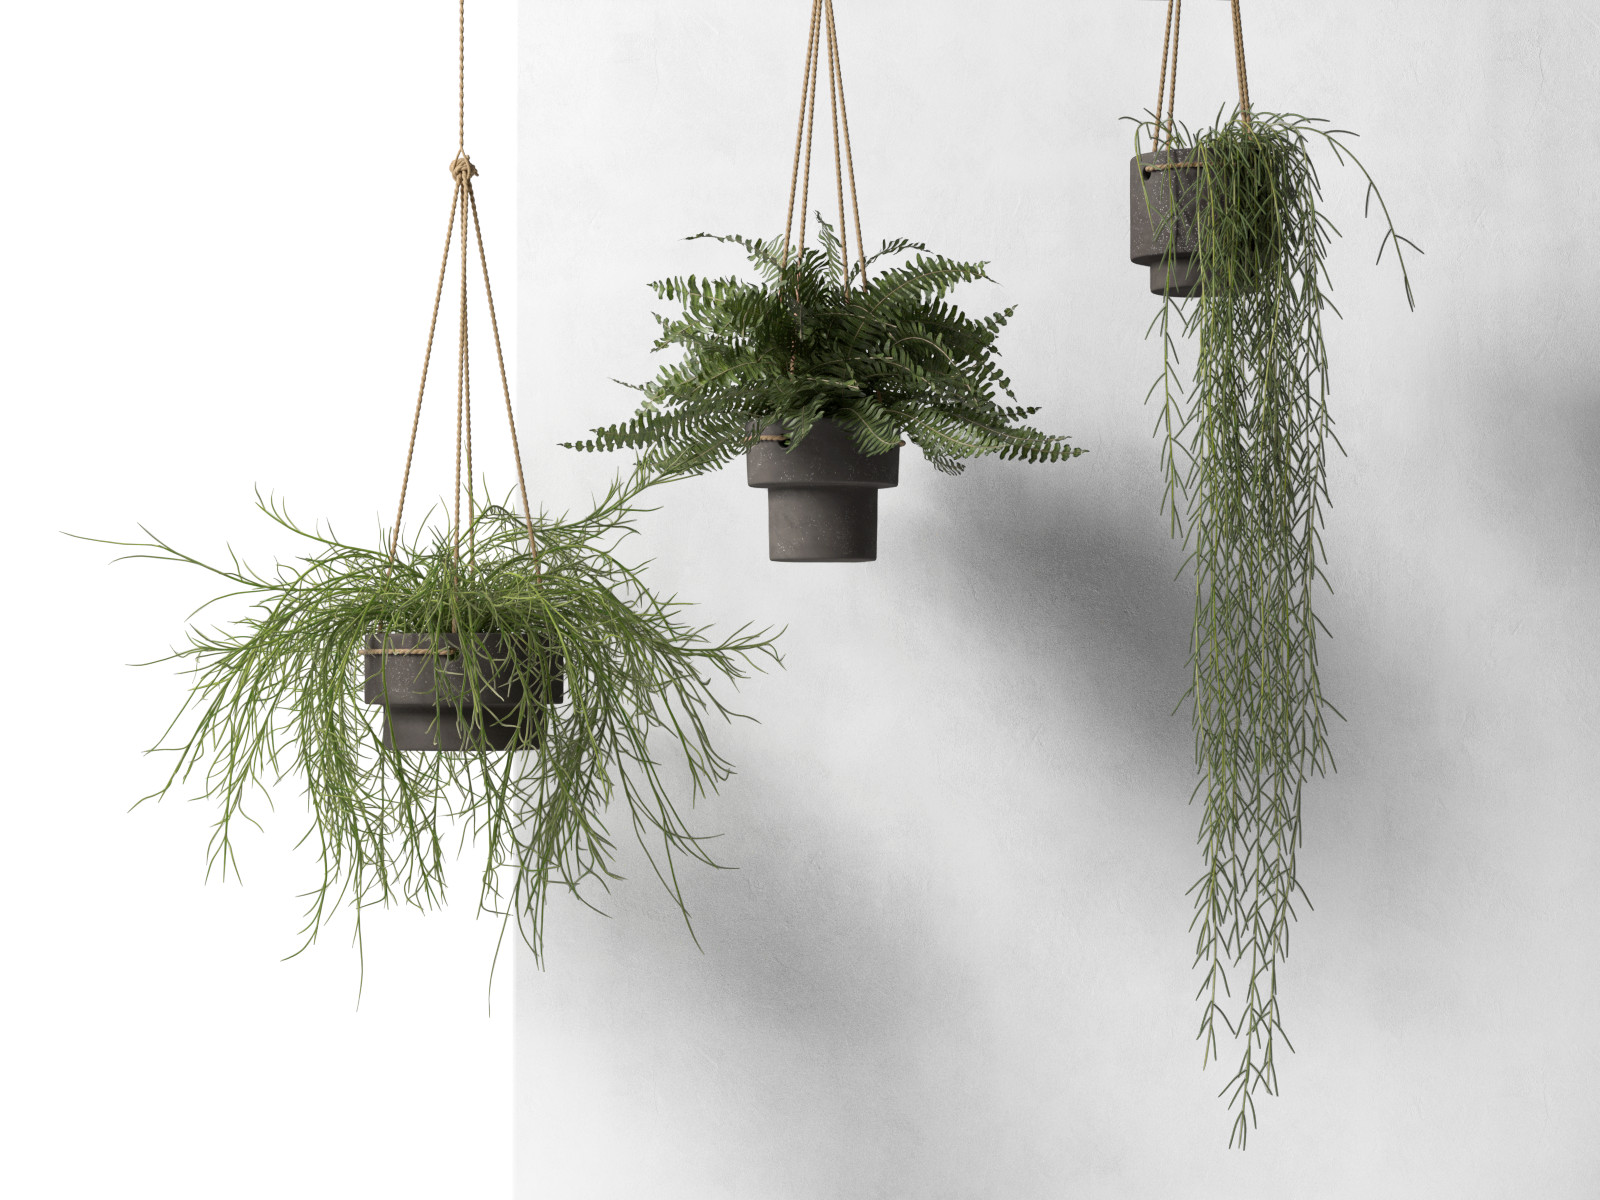 hanging pots with plants. Black Bedroom Furniture Sets. Home Design Ideas